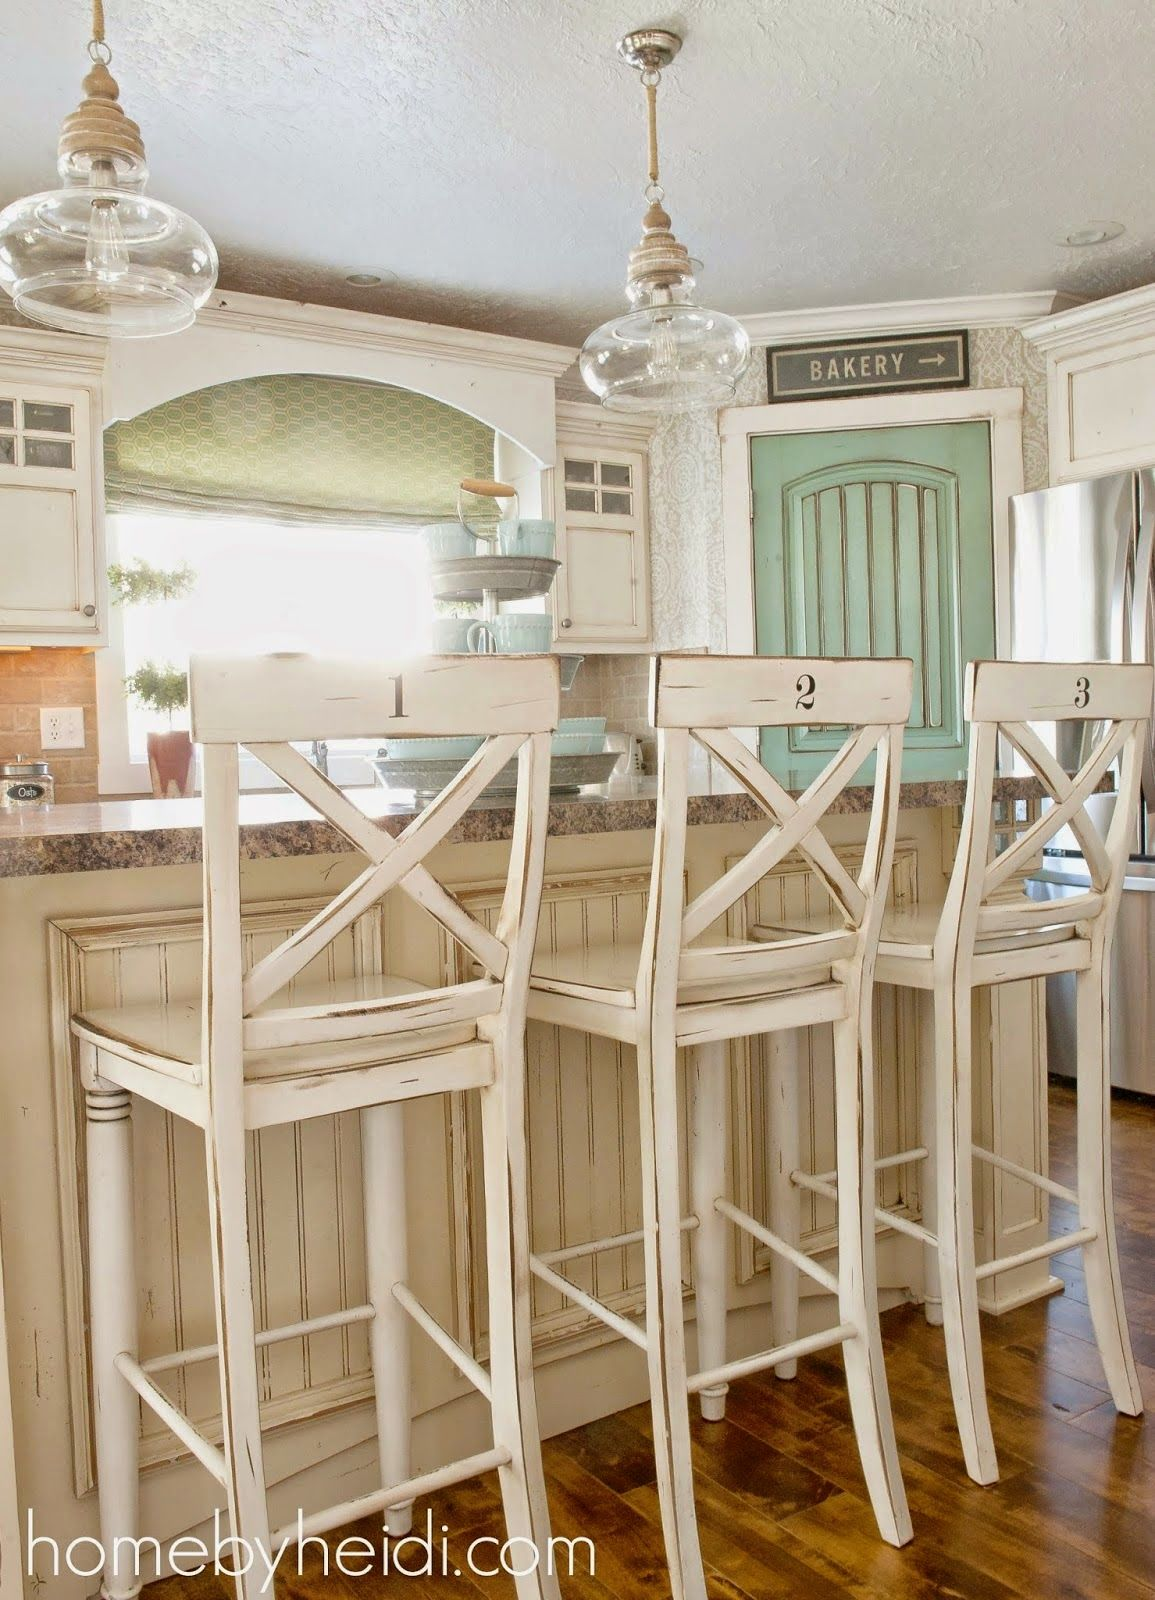 Home By Heidi Kitchen Trendy Farmhouse Kitchen Home Farmhouse Bar Stools